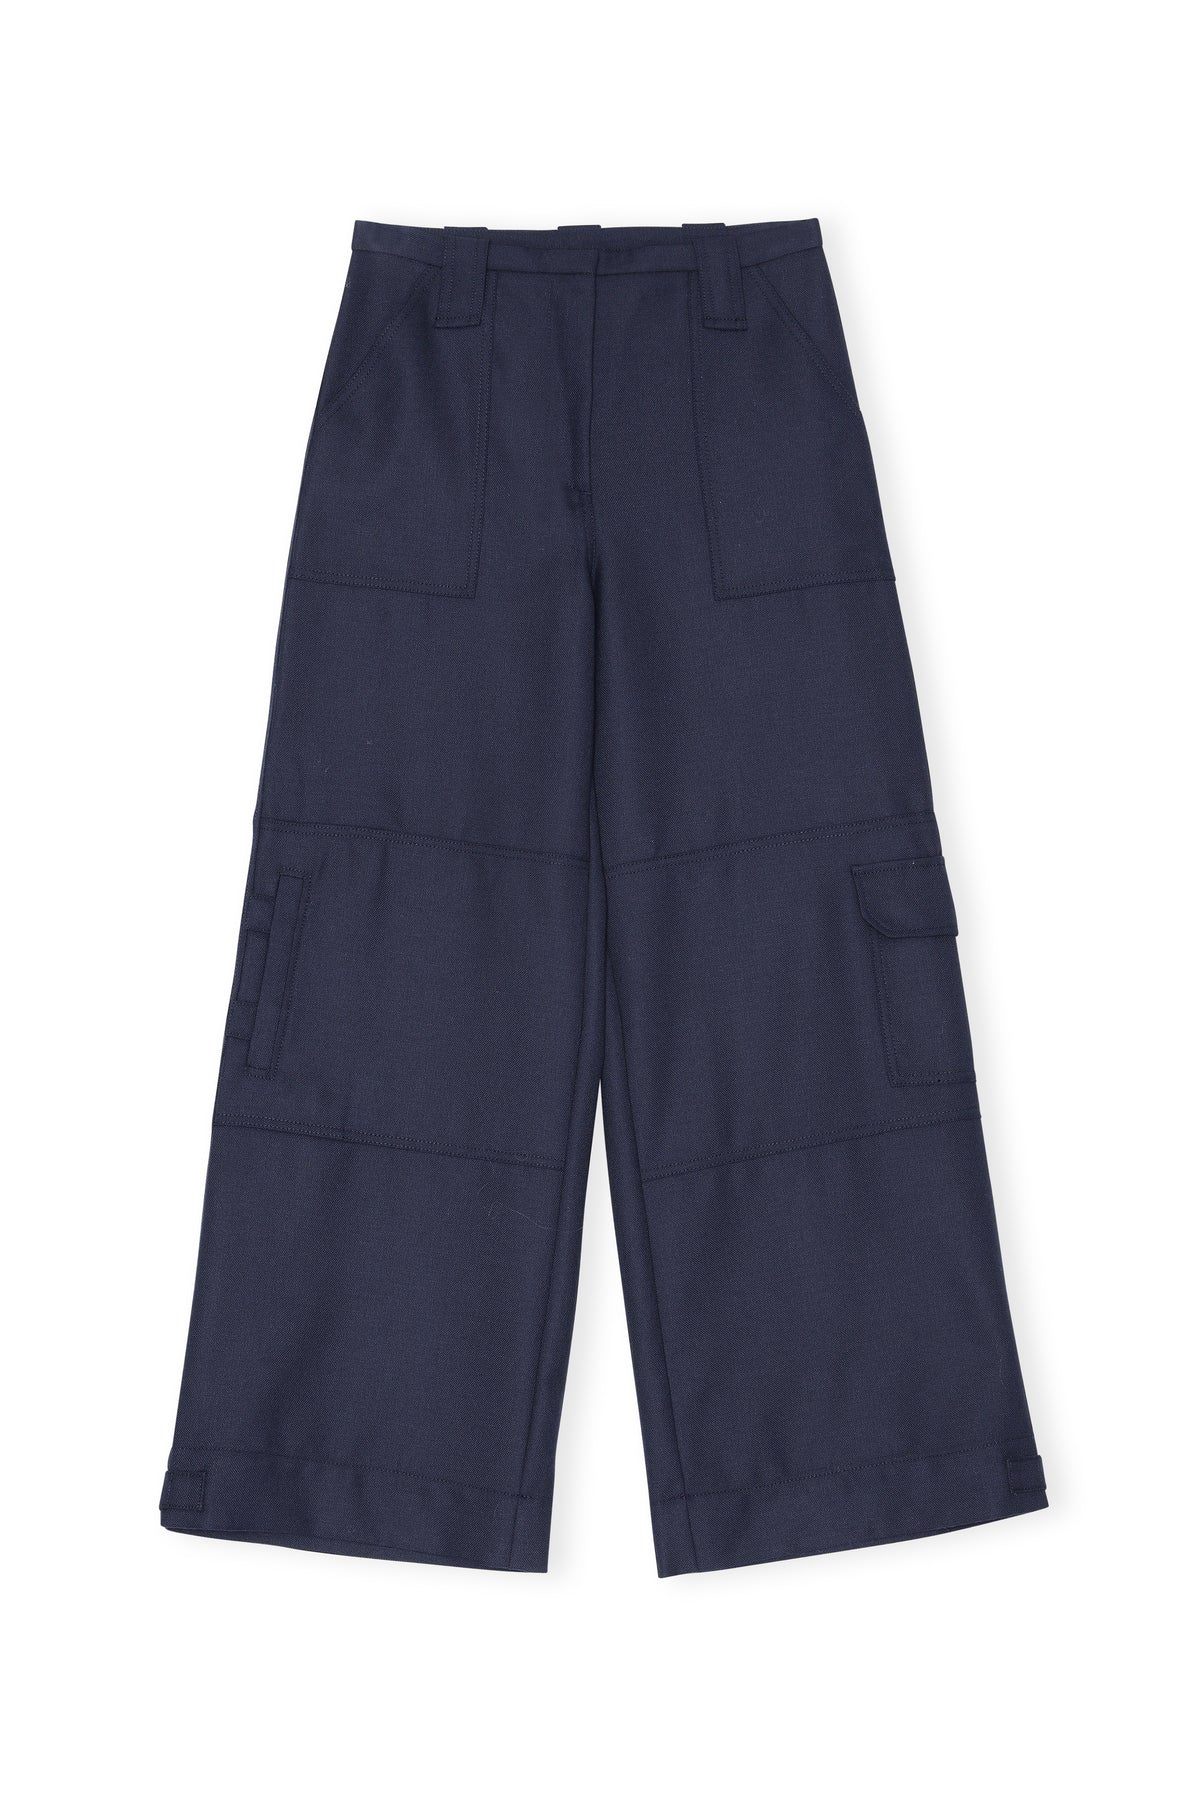 Ganni - Wool Suiting Trousers | Sky Captain